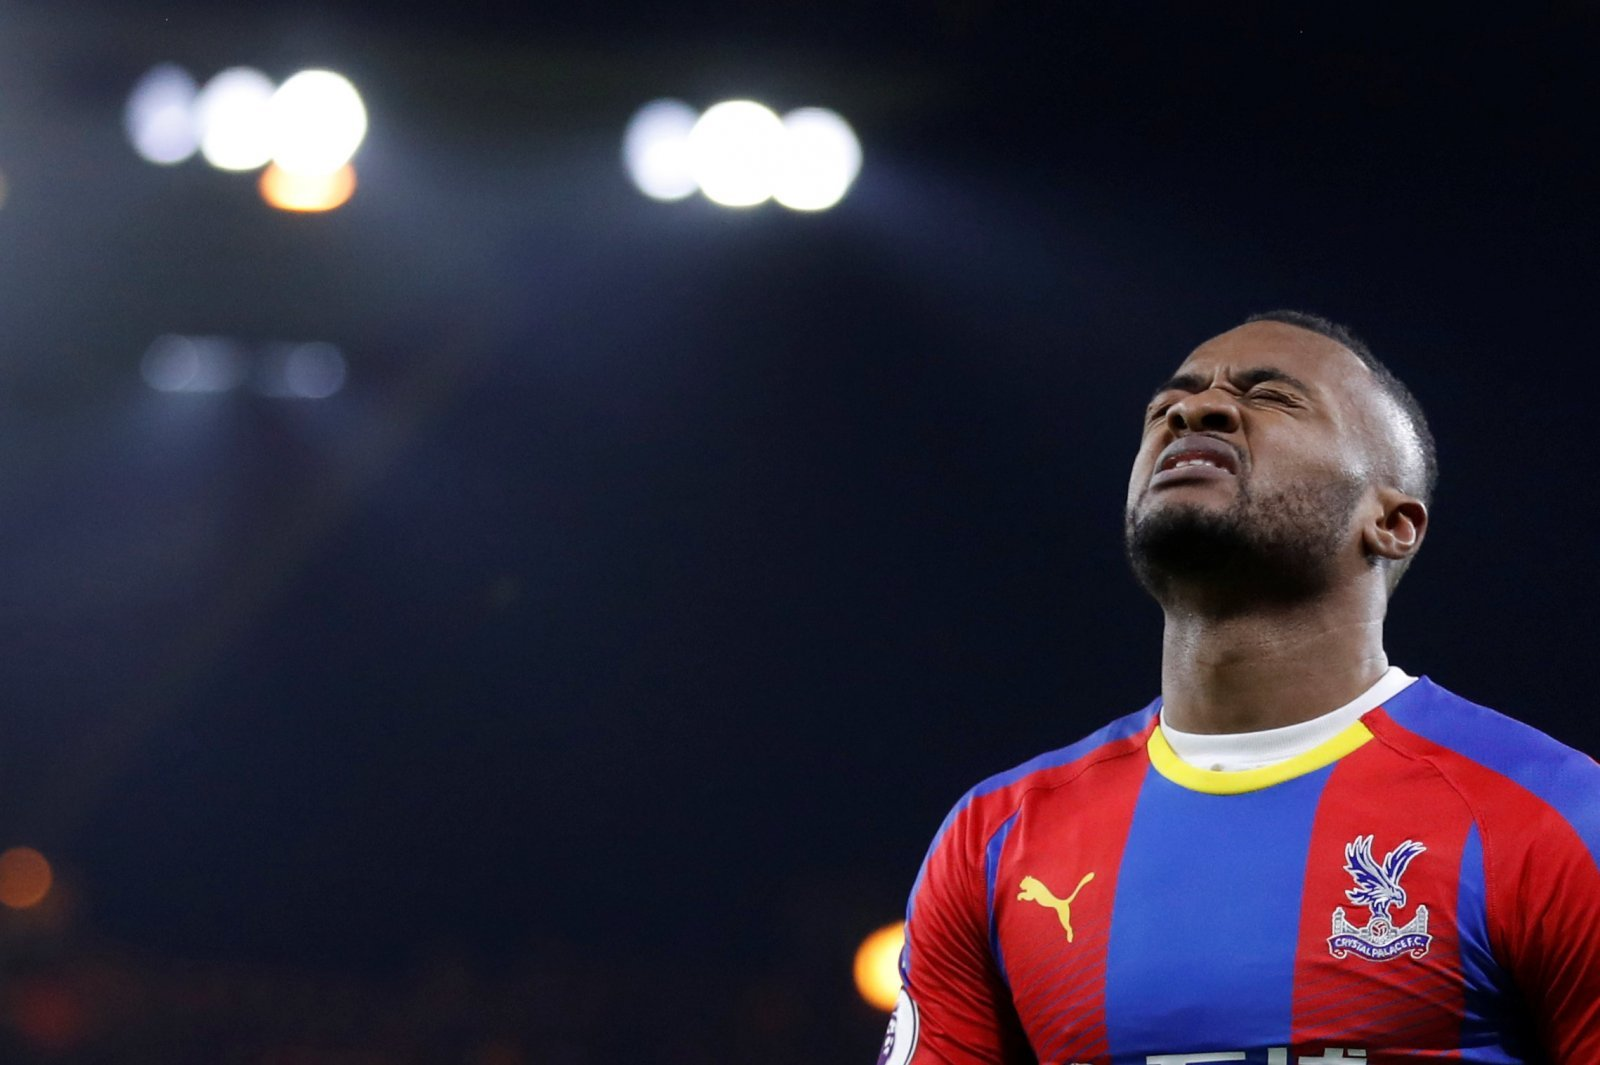 Crystal Palace want to sign Jordan Ayew permanently